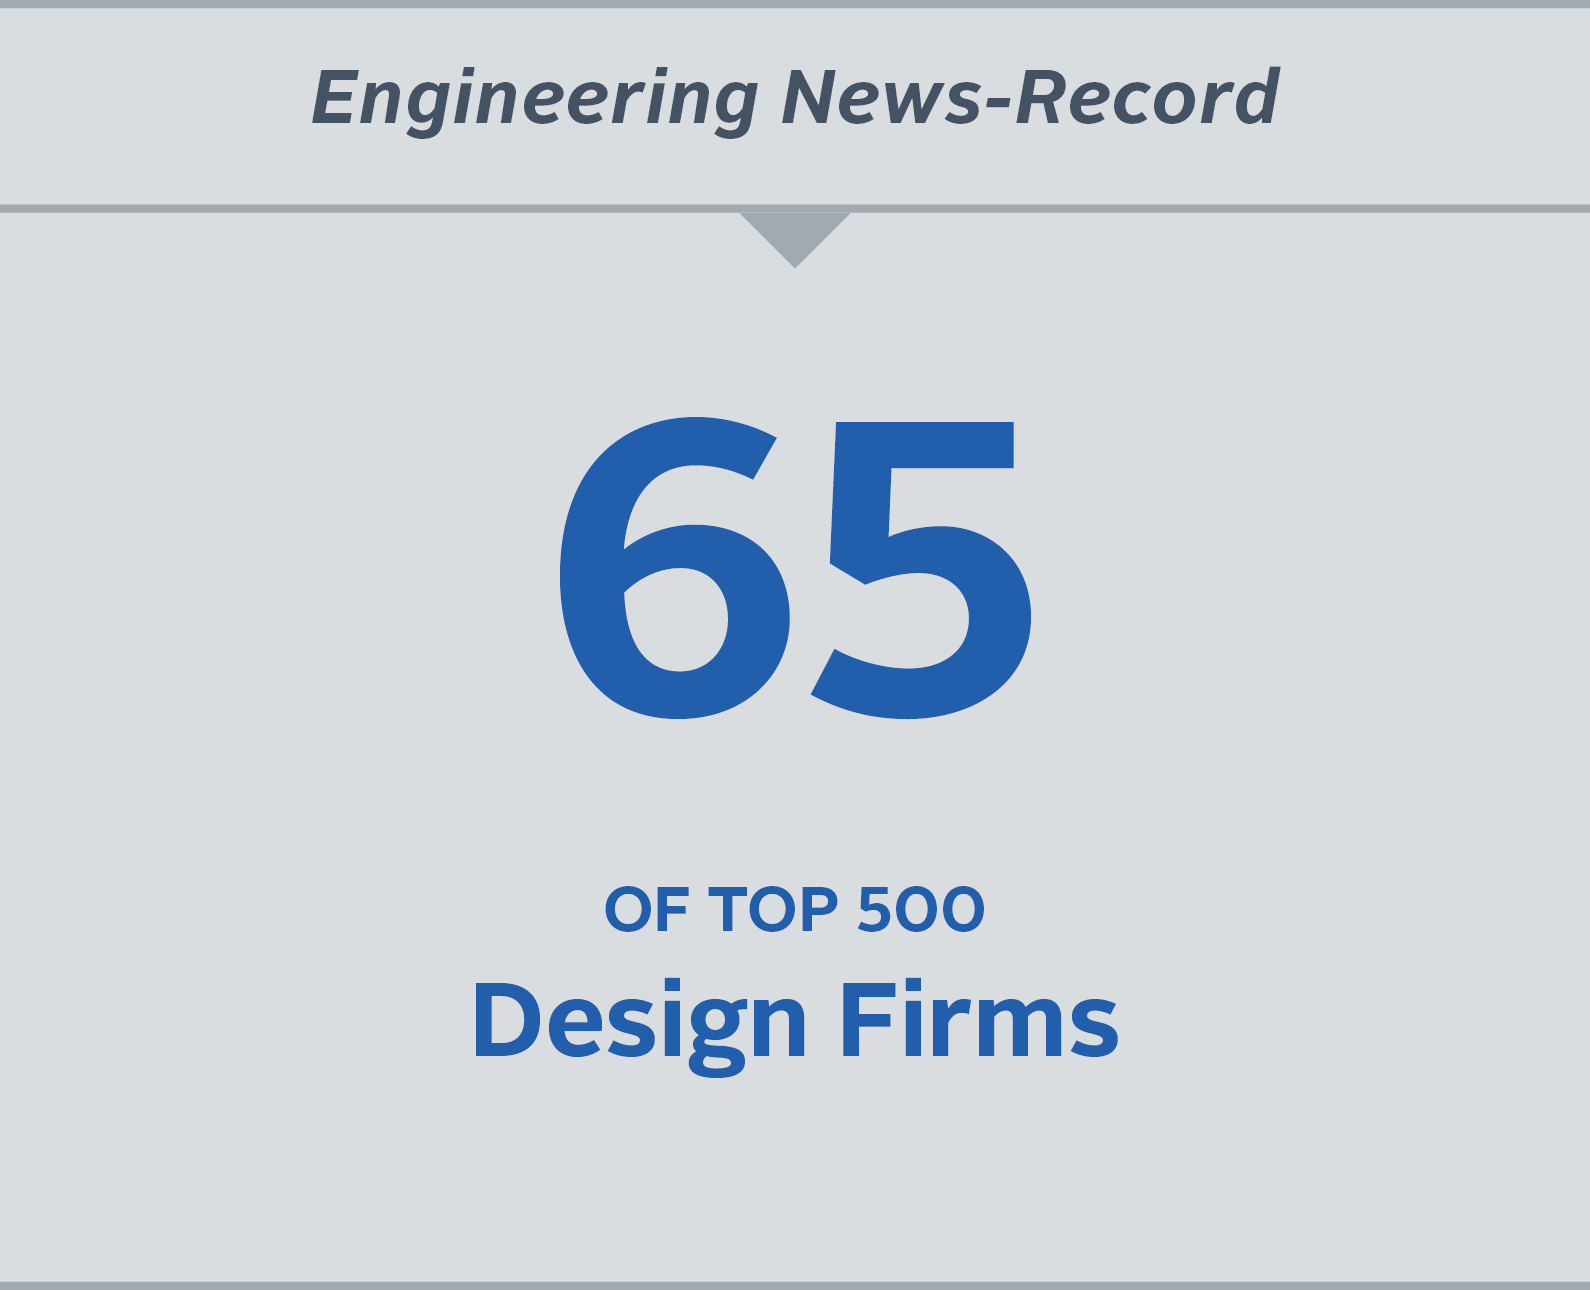 Number 65 of top 100 Design Firms.